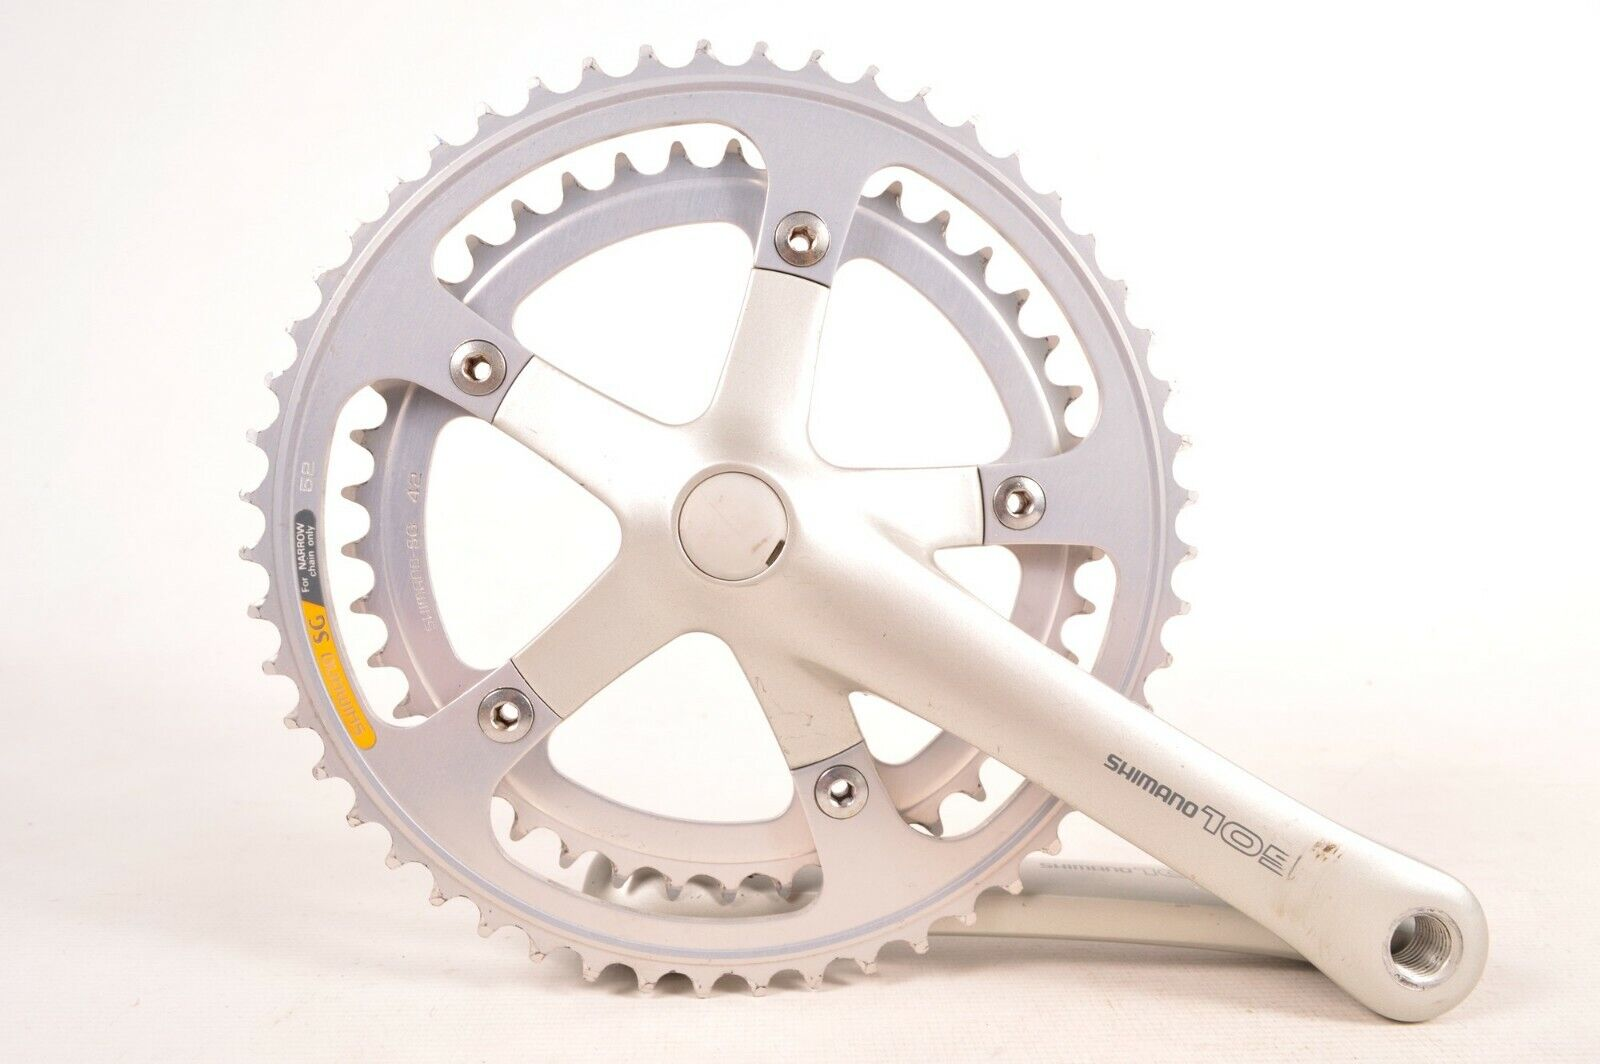 Shimano 105 FC-1055 Bicycle Crankset 170 mm Double 42 52 T